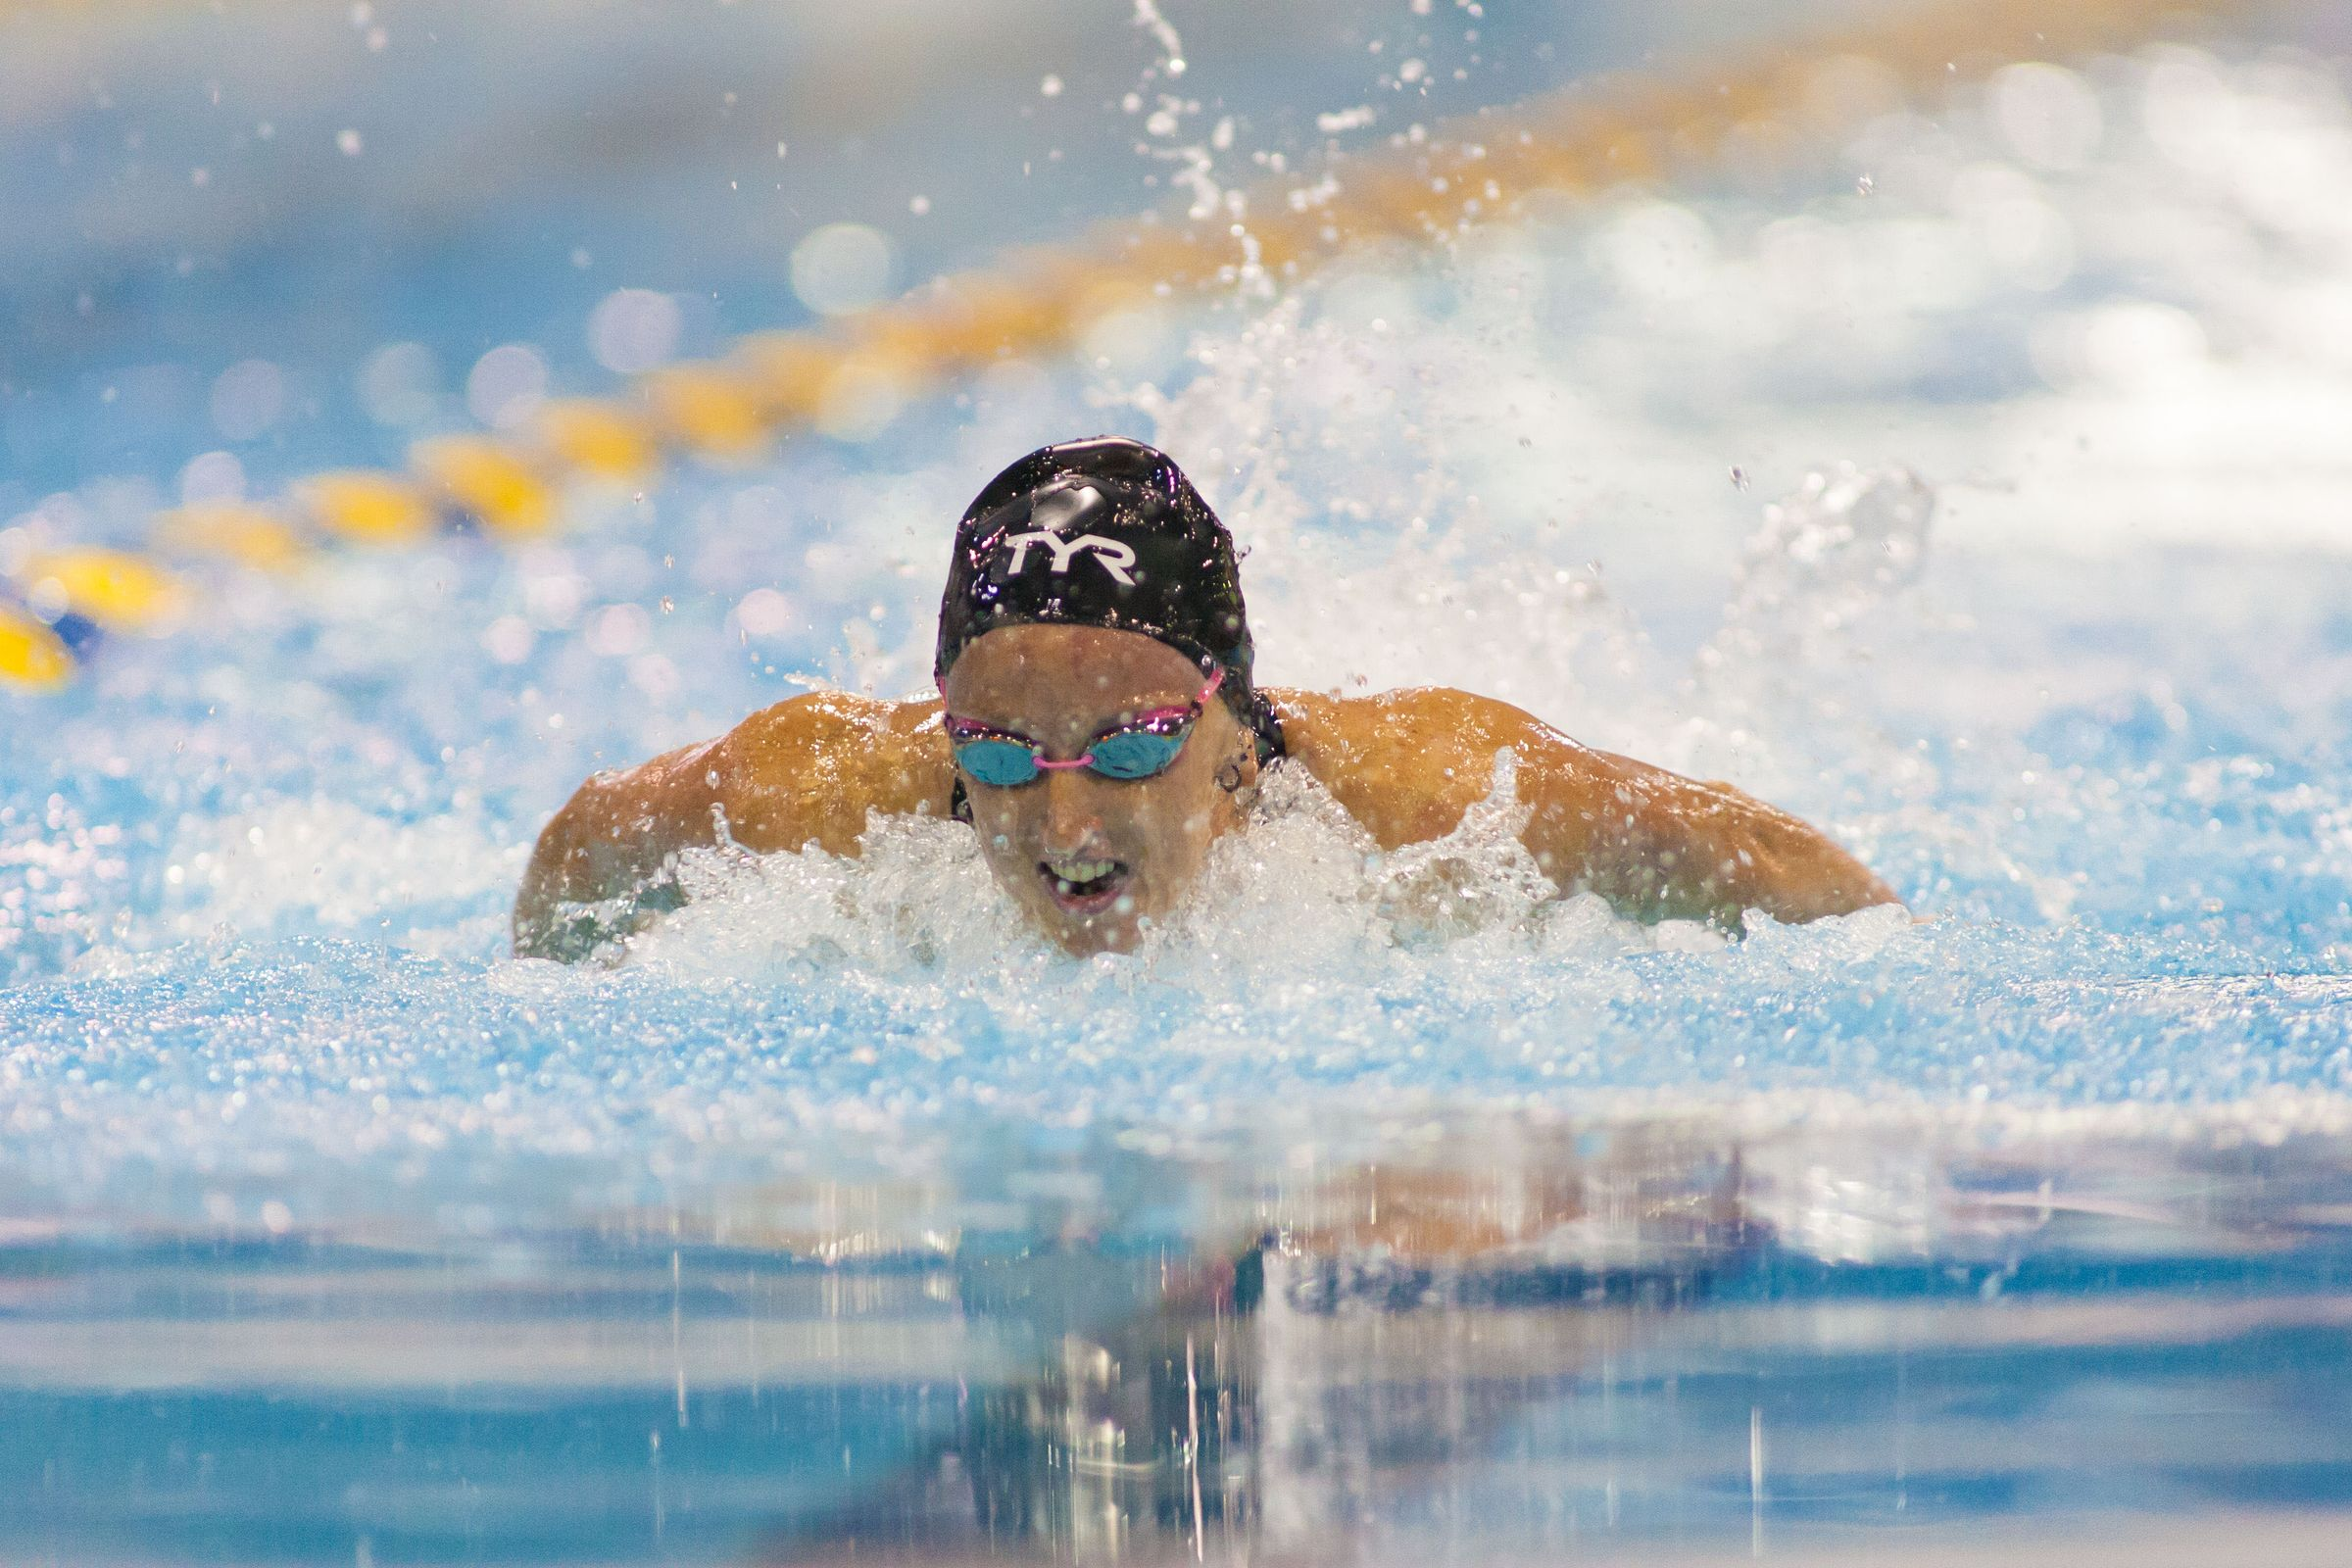 May 15, 2015; Charlotte, NC, USA; Claie Donahue swims the 100 LC Meter Butterfly during the finals at the Mecklenburg County Aquatic Center. Mandatory Credit: Jeremy Brevard-USA TODAY Sports